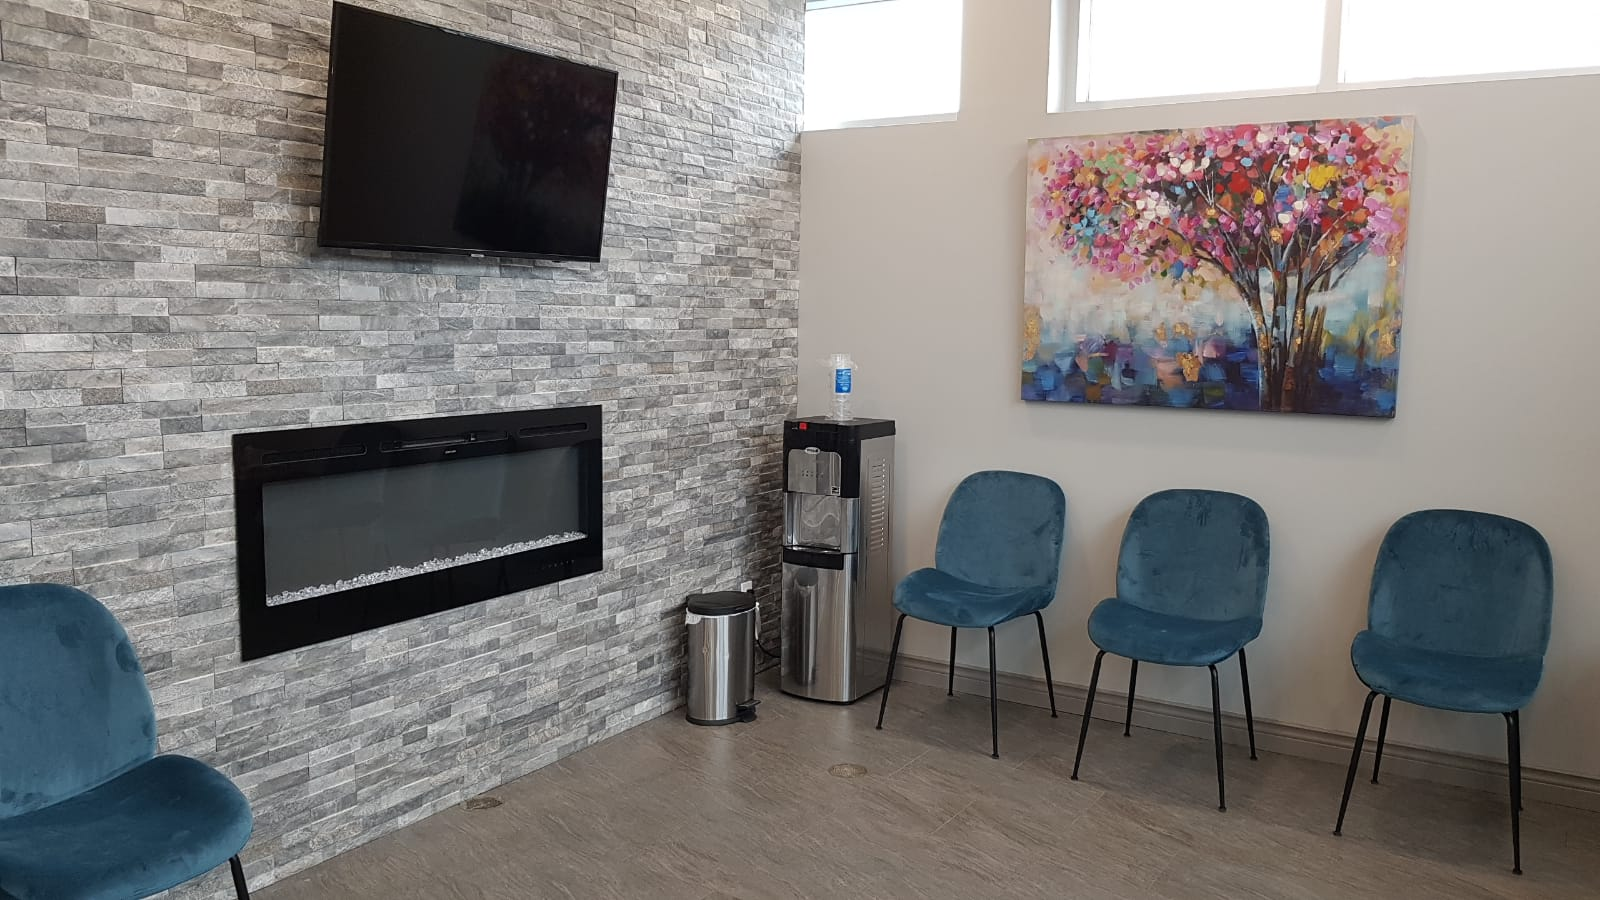 Waiting area with Tv, water dispenser and the chair with painting on the wall